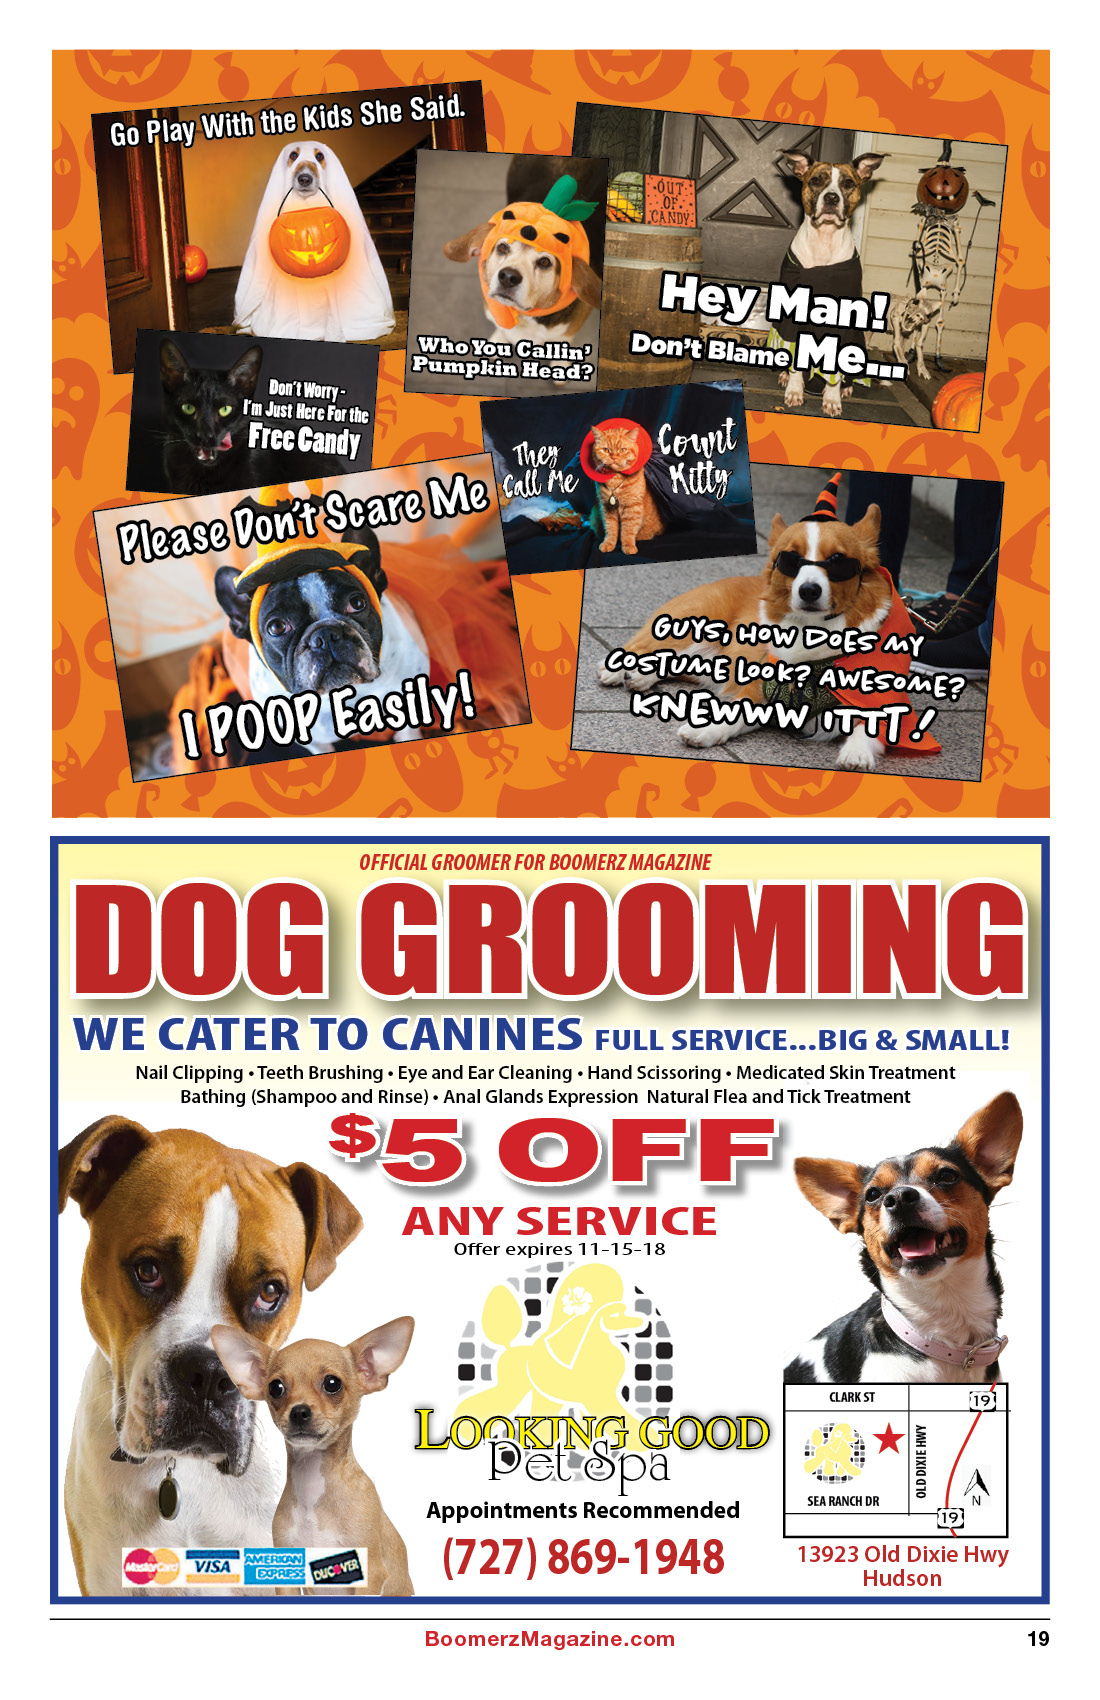 2018 October Boomerz Magazine Page 19 Add from Looking Good Pet and Spa